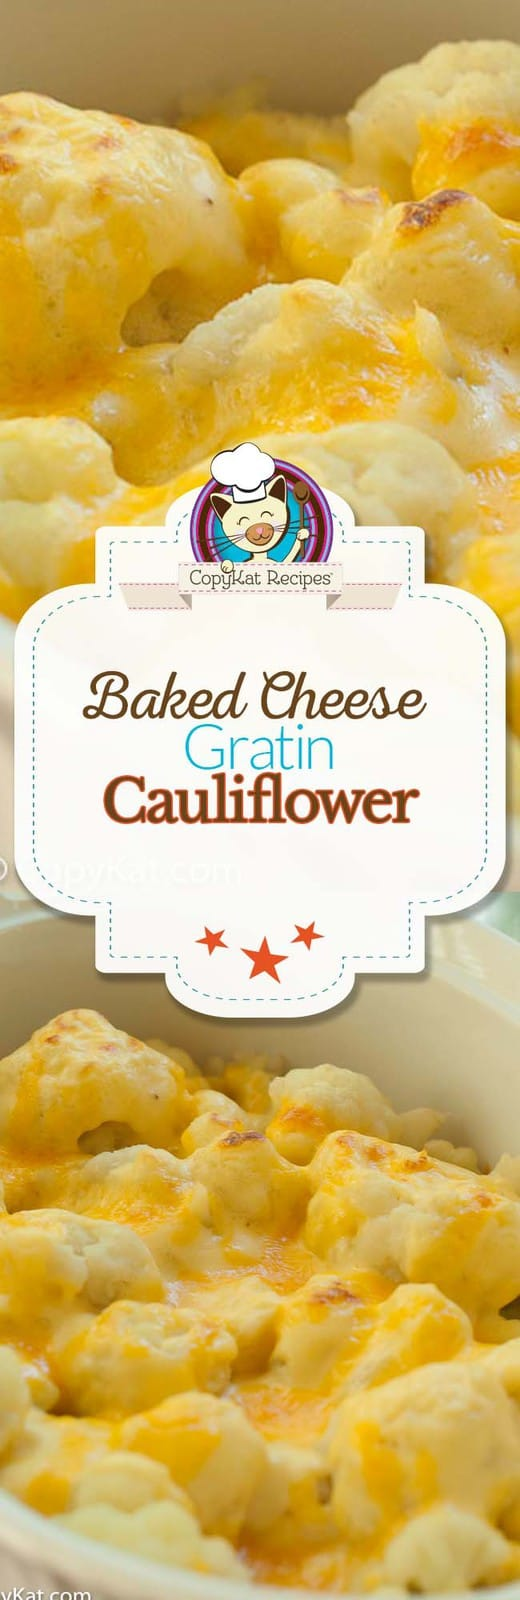 Baked Cheese Cauliflower Gratin, this is an easy recipe and is a great way to enjoy cauliflower.